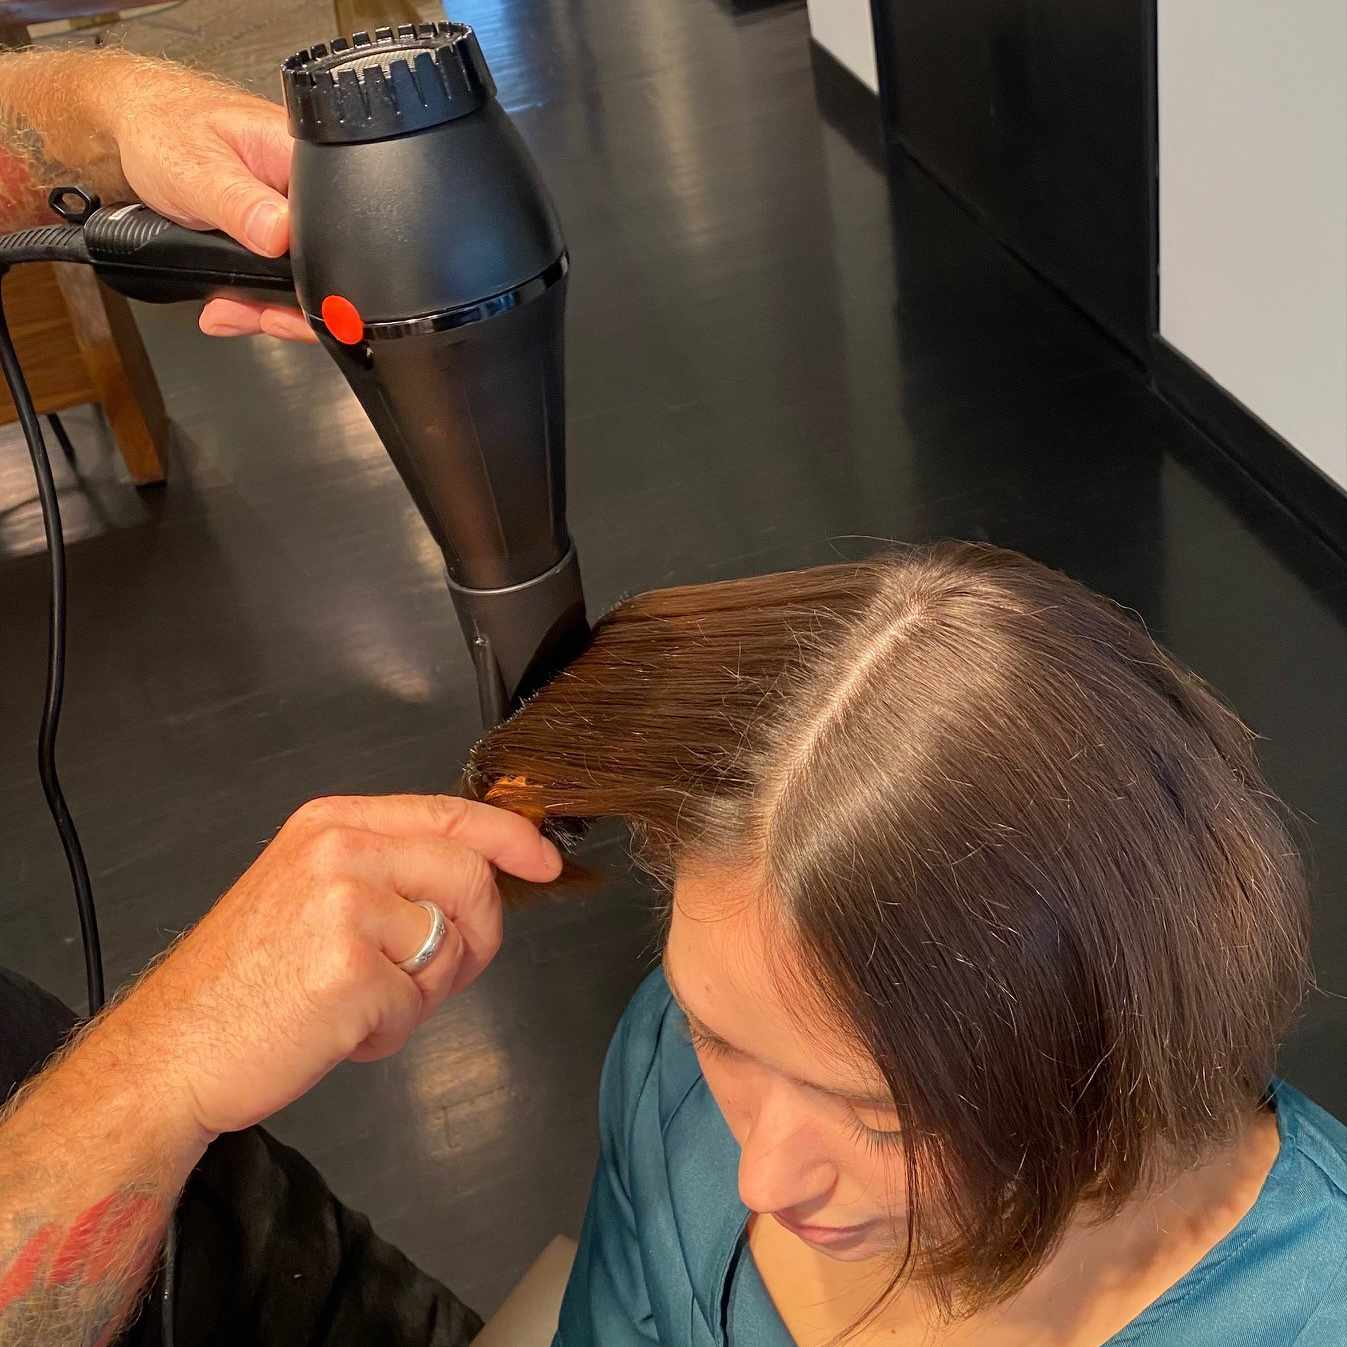 Hairstylist using a blowdryer to create a center part in a client's hair